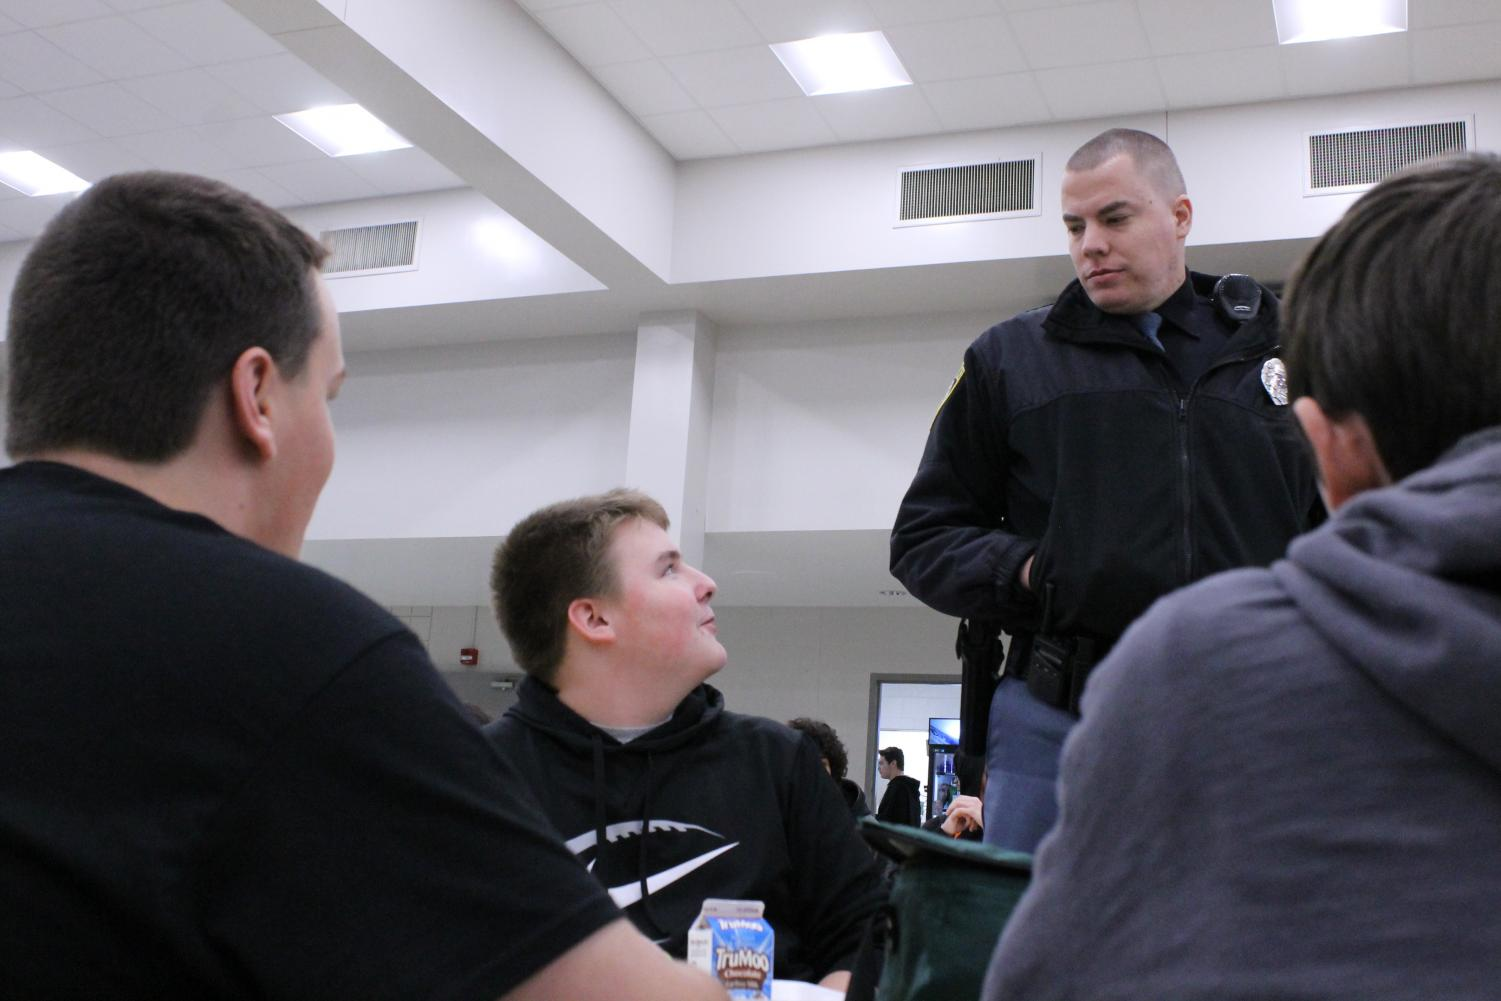 Engaging with students at lunch, Resource Officer Brad Hagman engages with Students at Lunch. Hagman hopes to take on a mentor role to the students and be someone they can talk to.